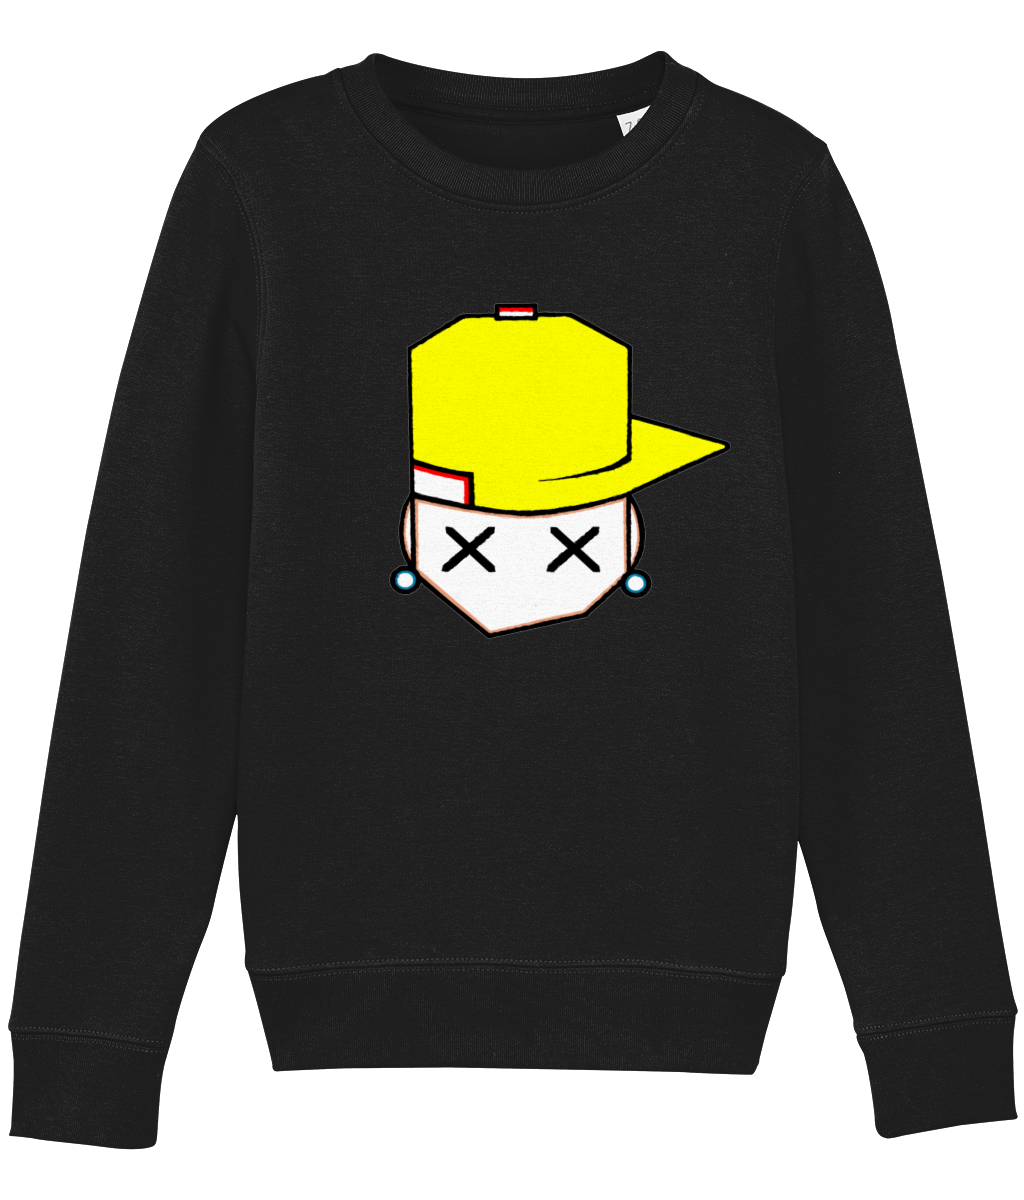 kids sweatshirt Mini Changer 13 yellow cap